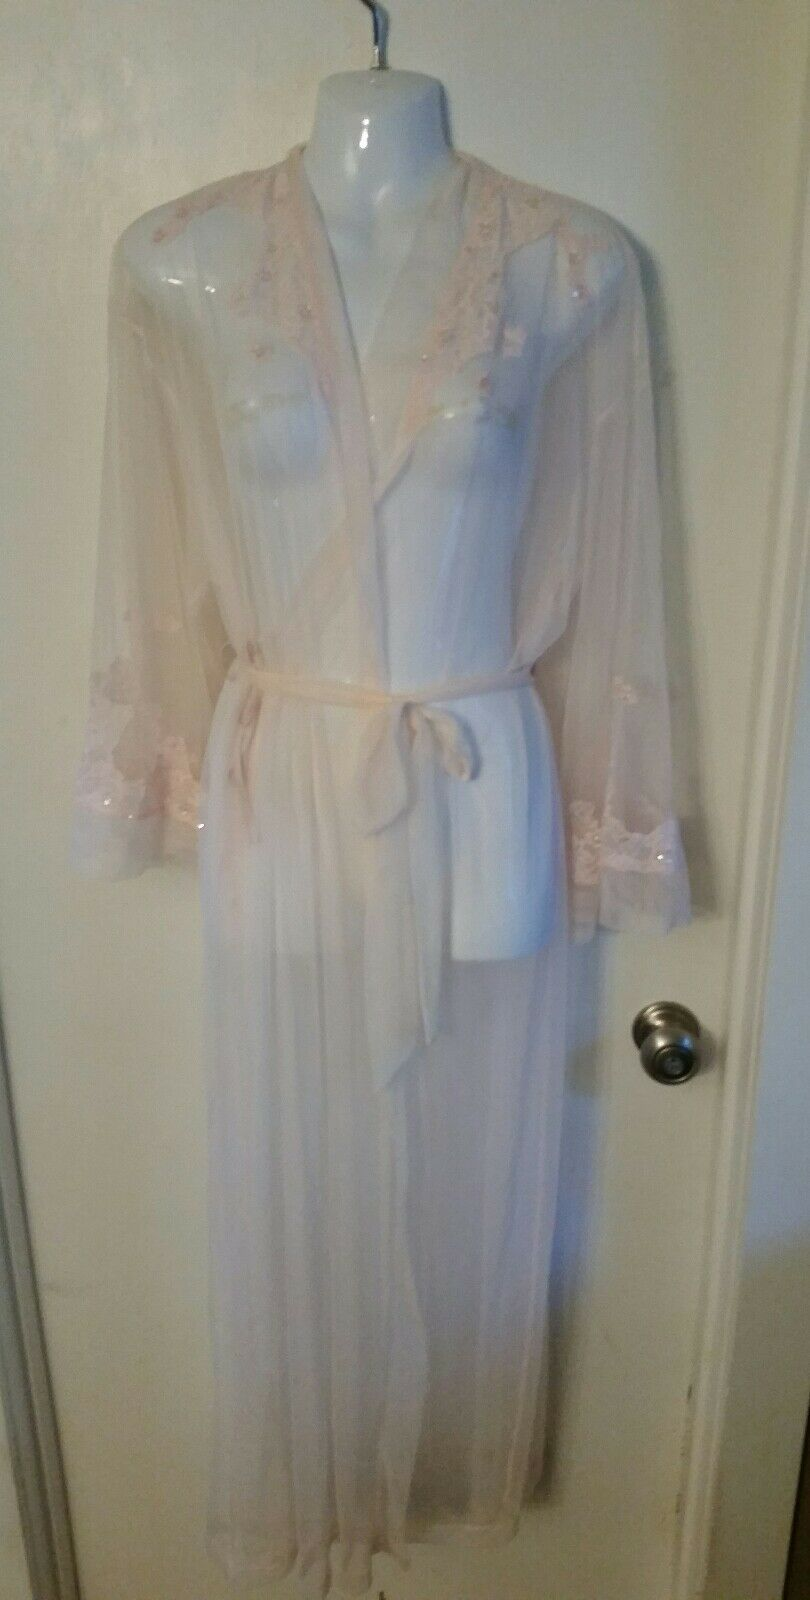 New Victoria's Secret Dream Angels Embroidered Lace Gown Boho Small XS S